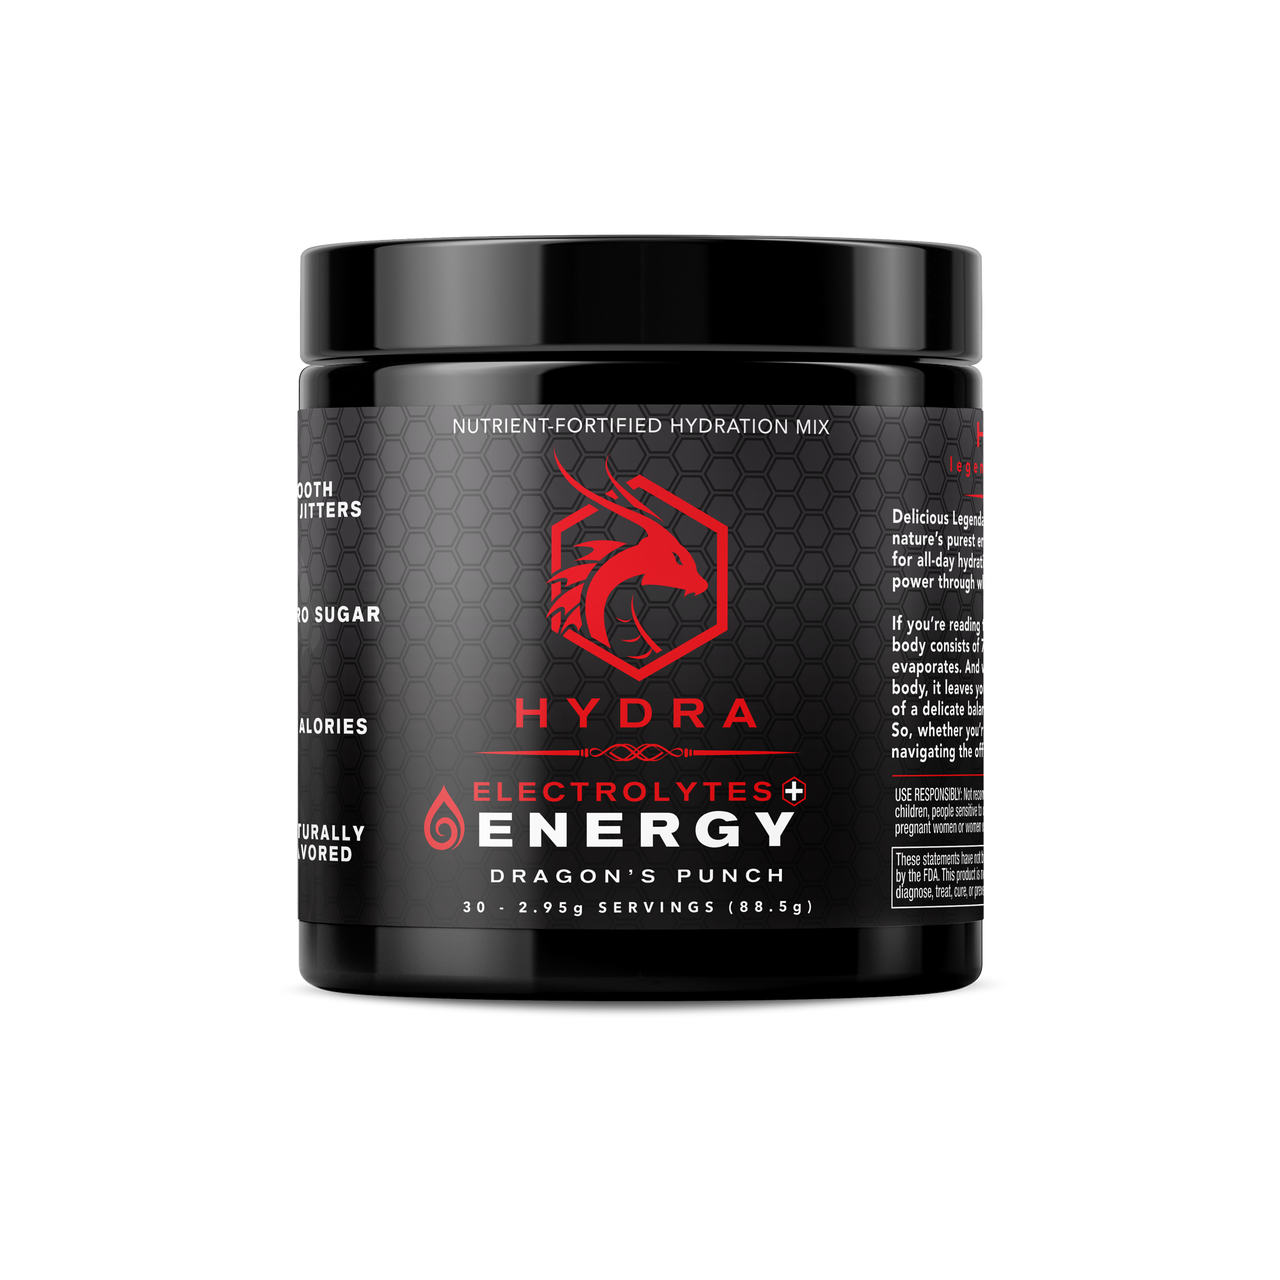 HYDRA: ENERGY + Electrolytes Drink Mix, Dragon's Punch, 30 Servings